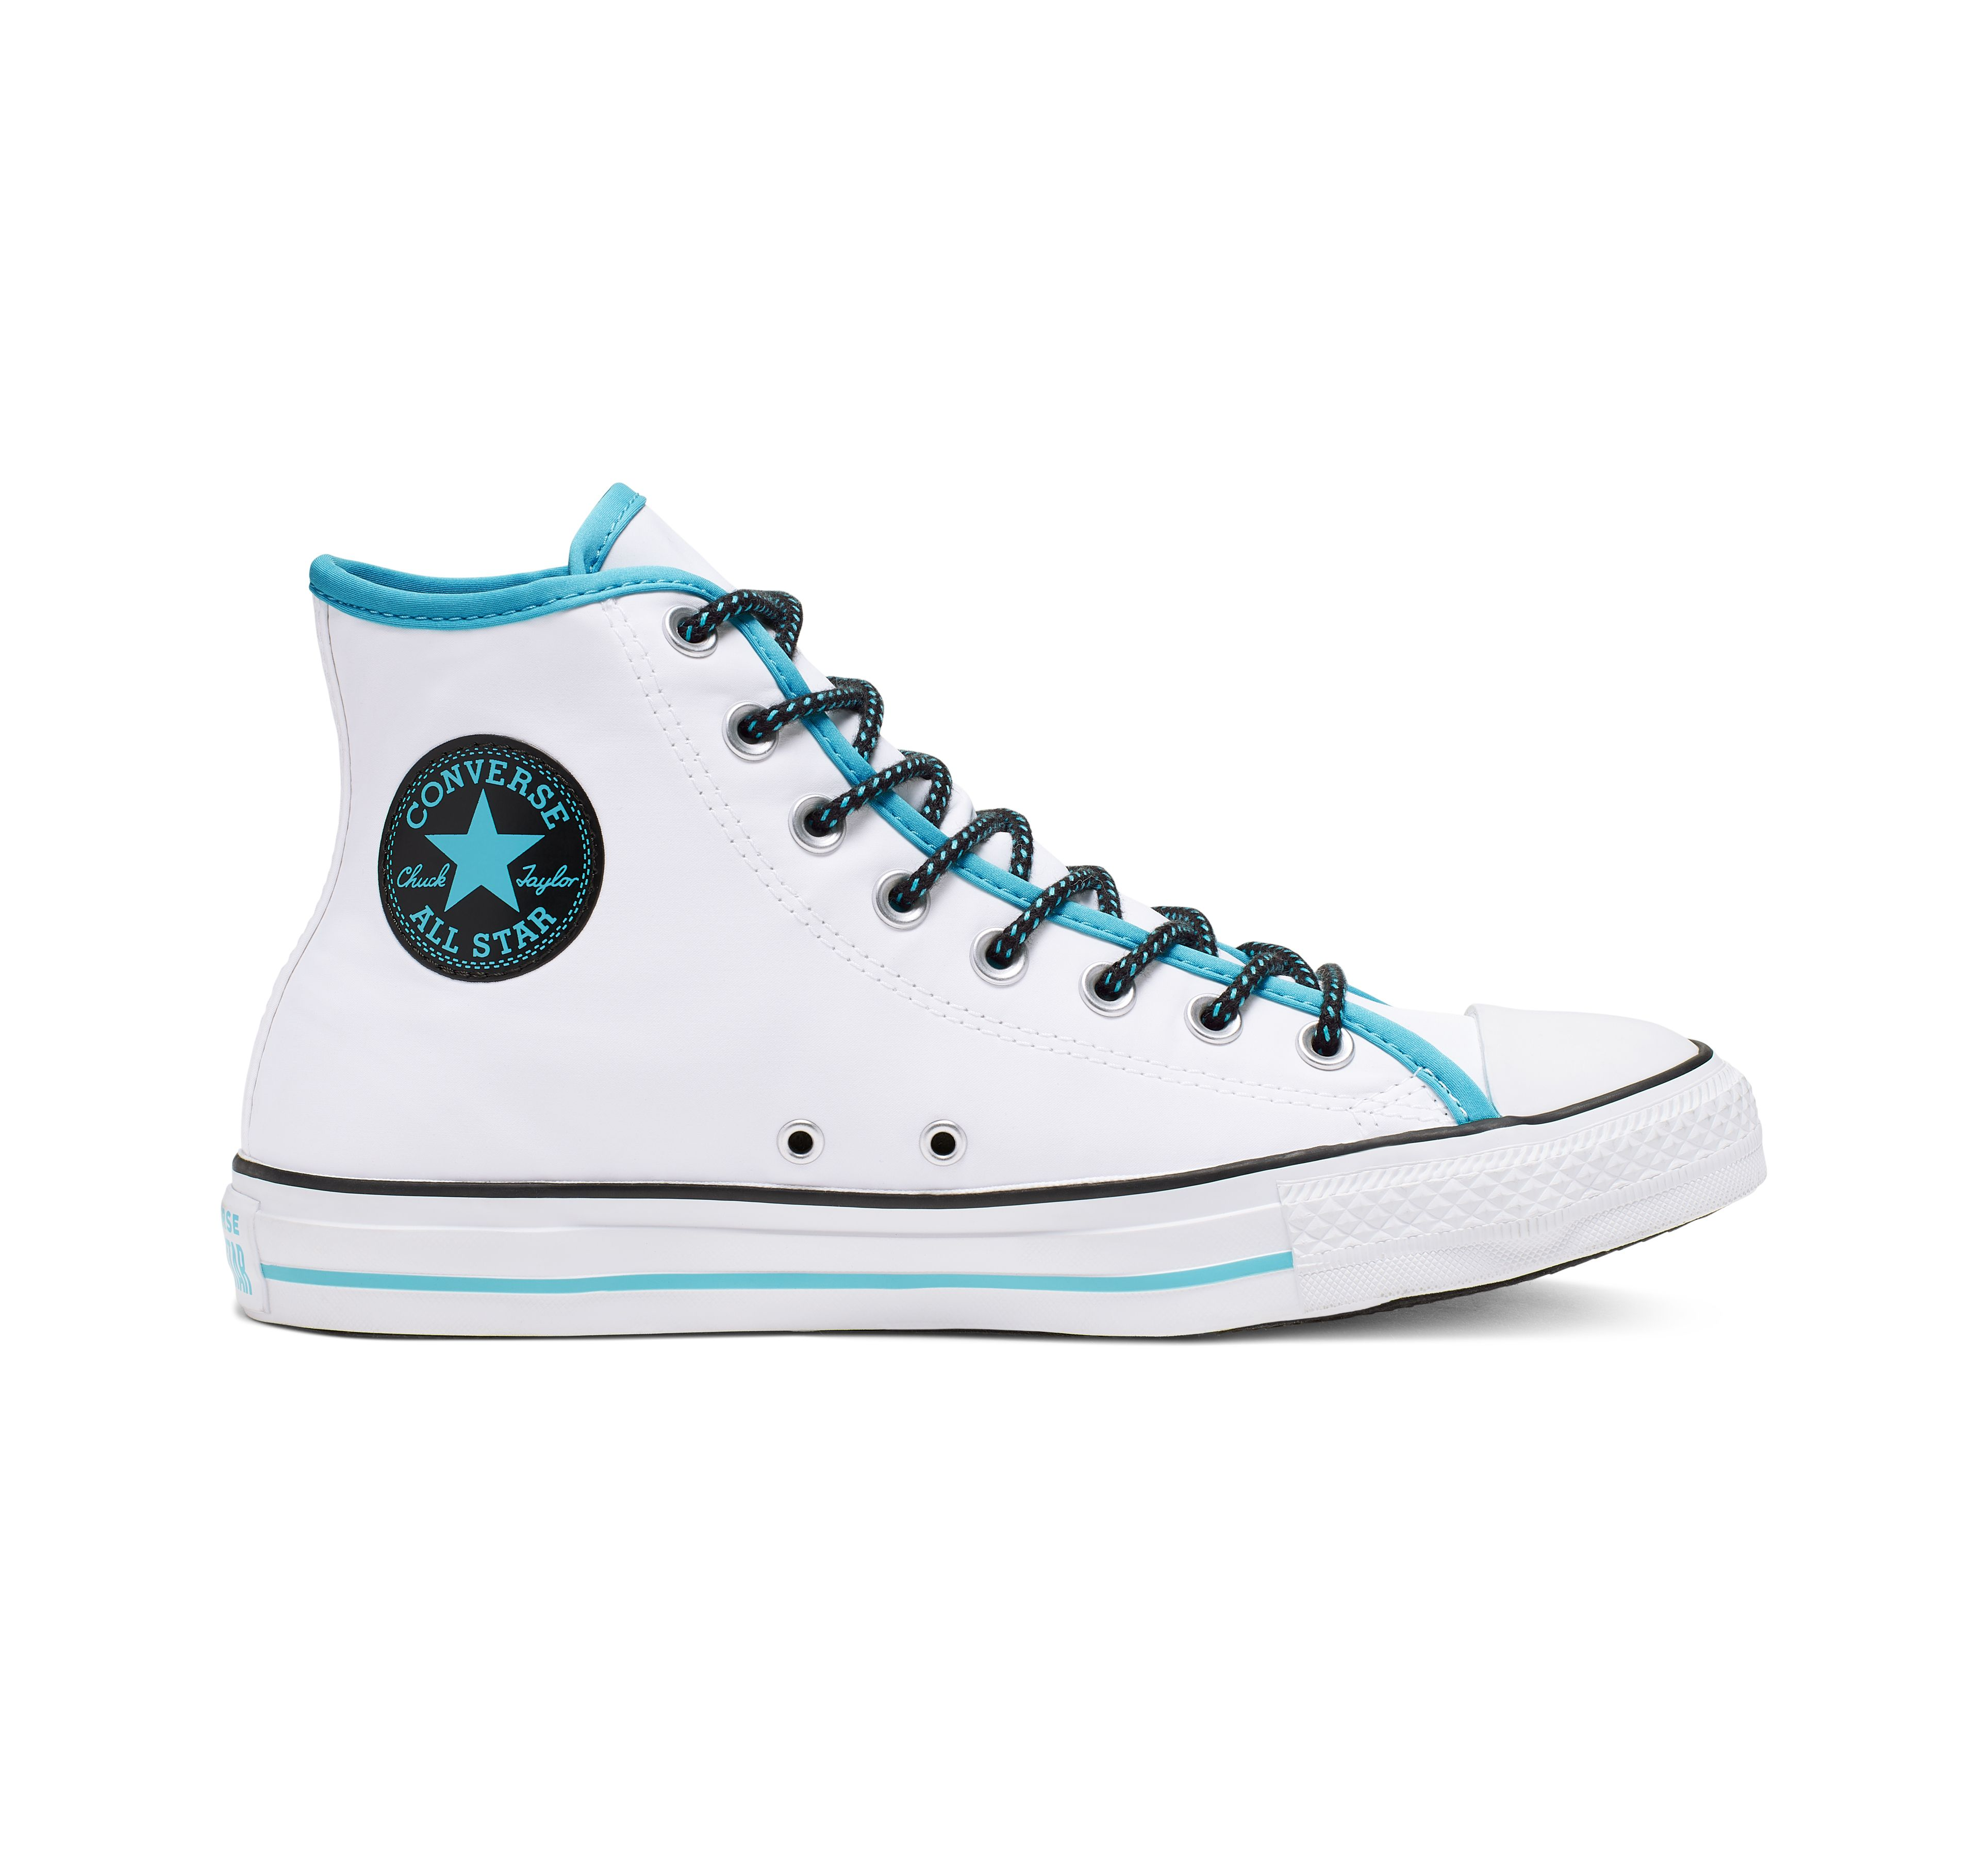 Chuck Taylor All Star Get Tubed High Top en 2020 | Ropa